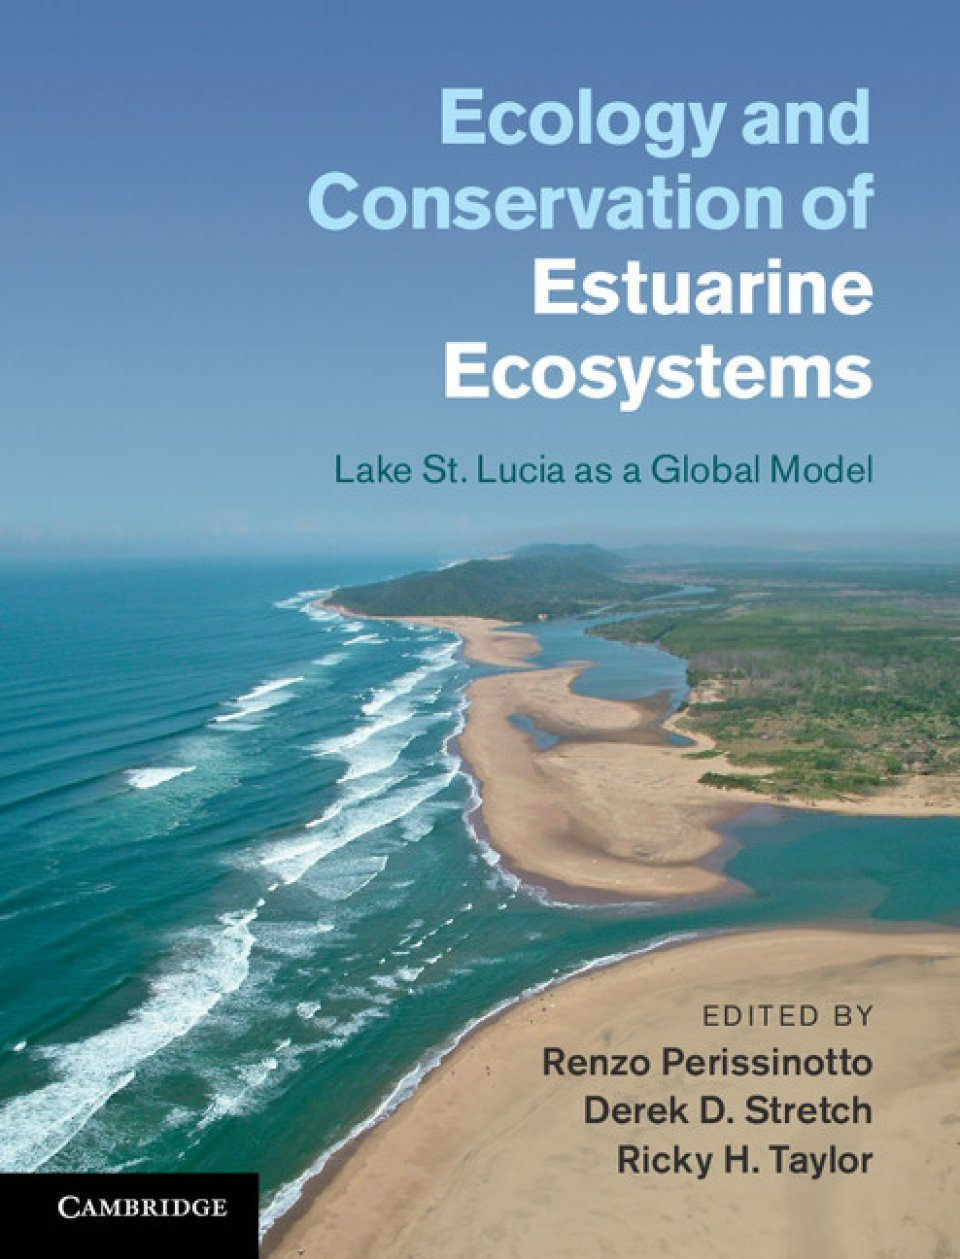 Ecology and Conservation of Estuarine Ecosystems